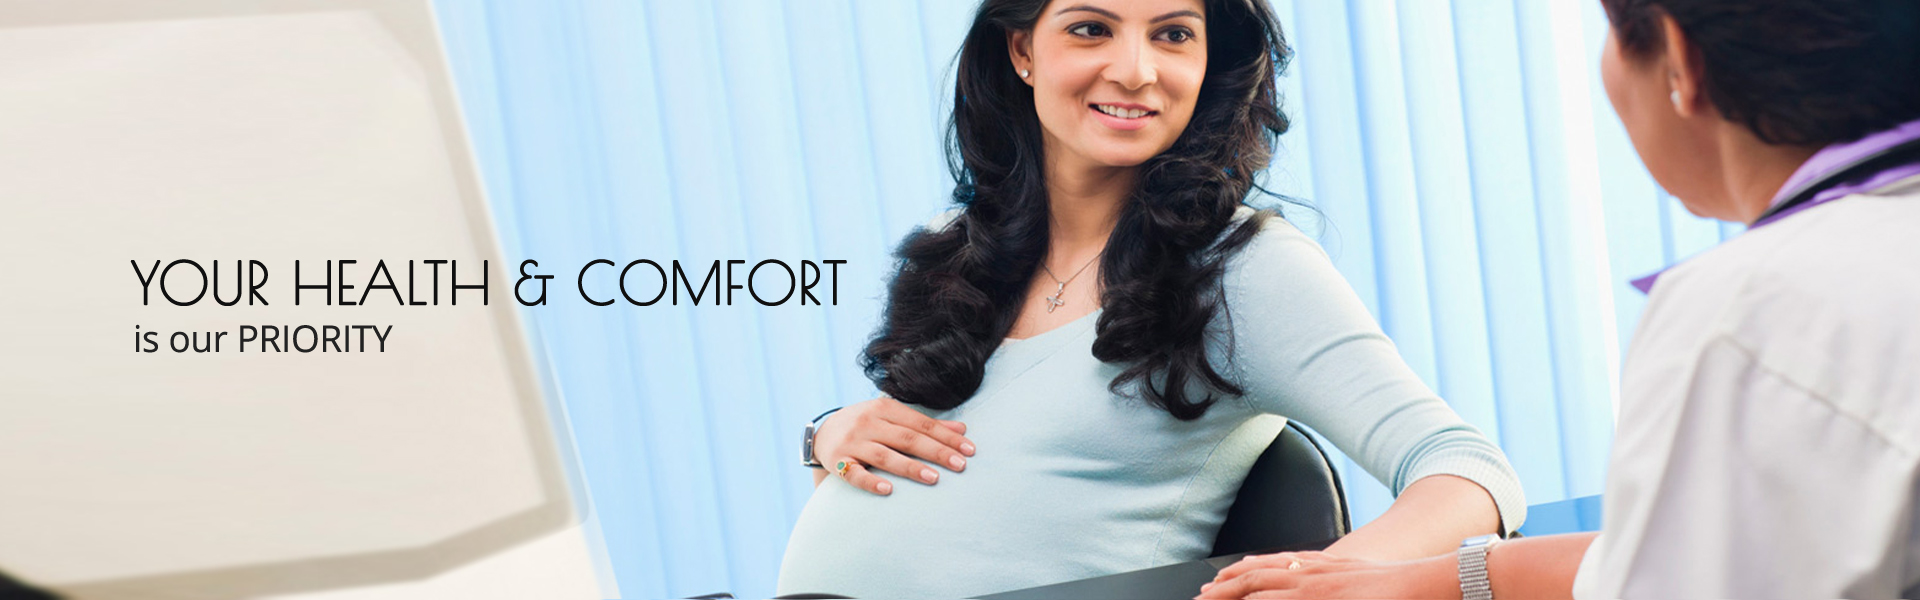 Health Spring Gynaecologist for your Health & Comfort